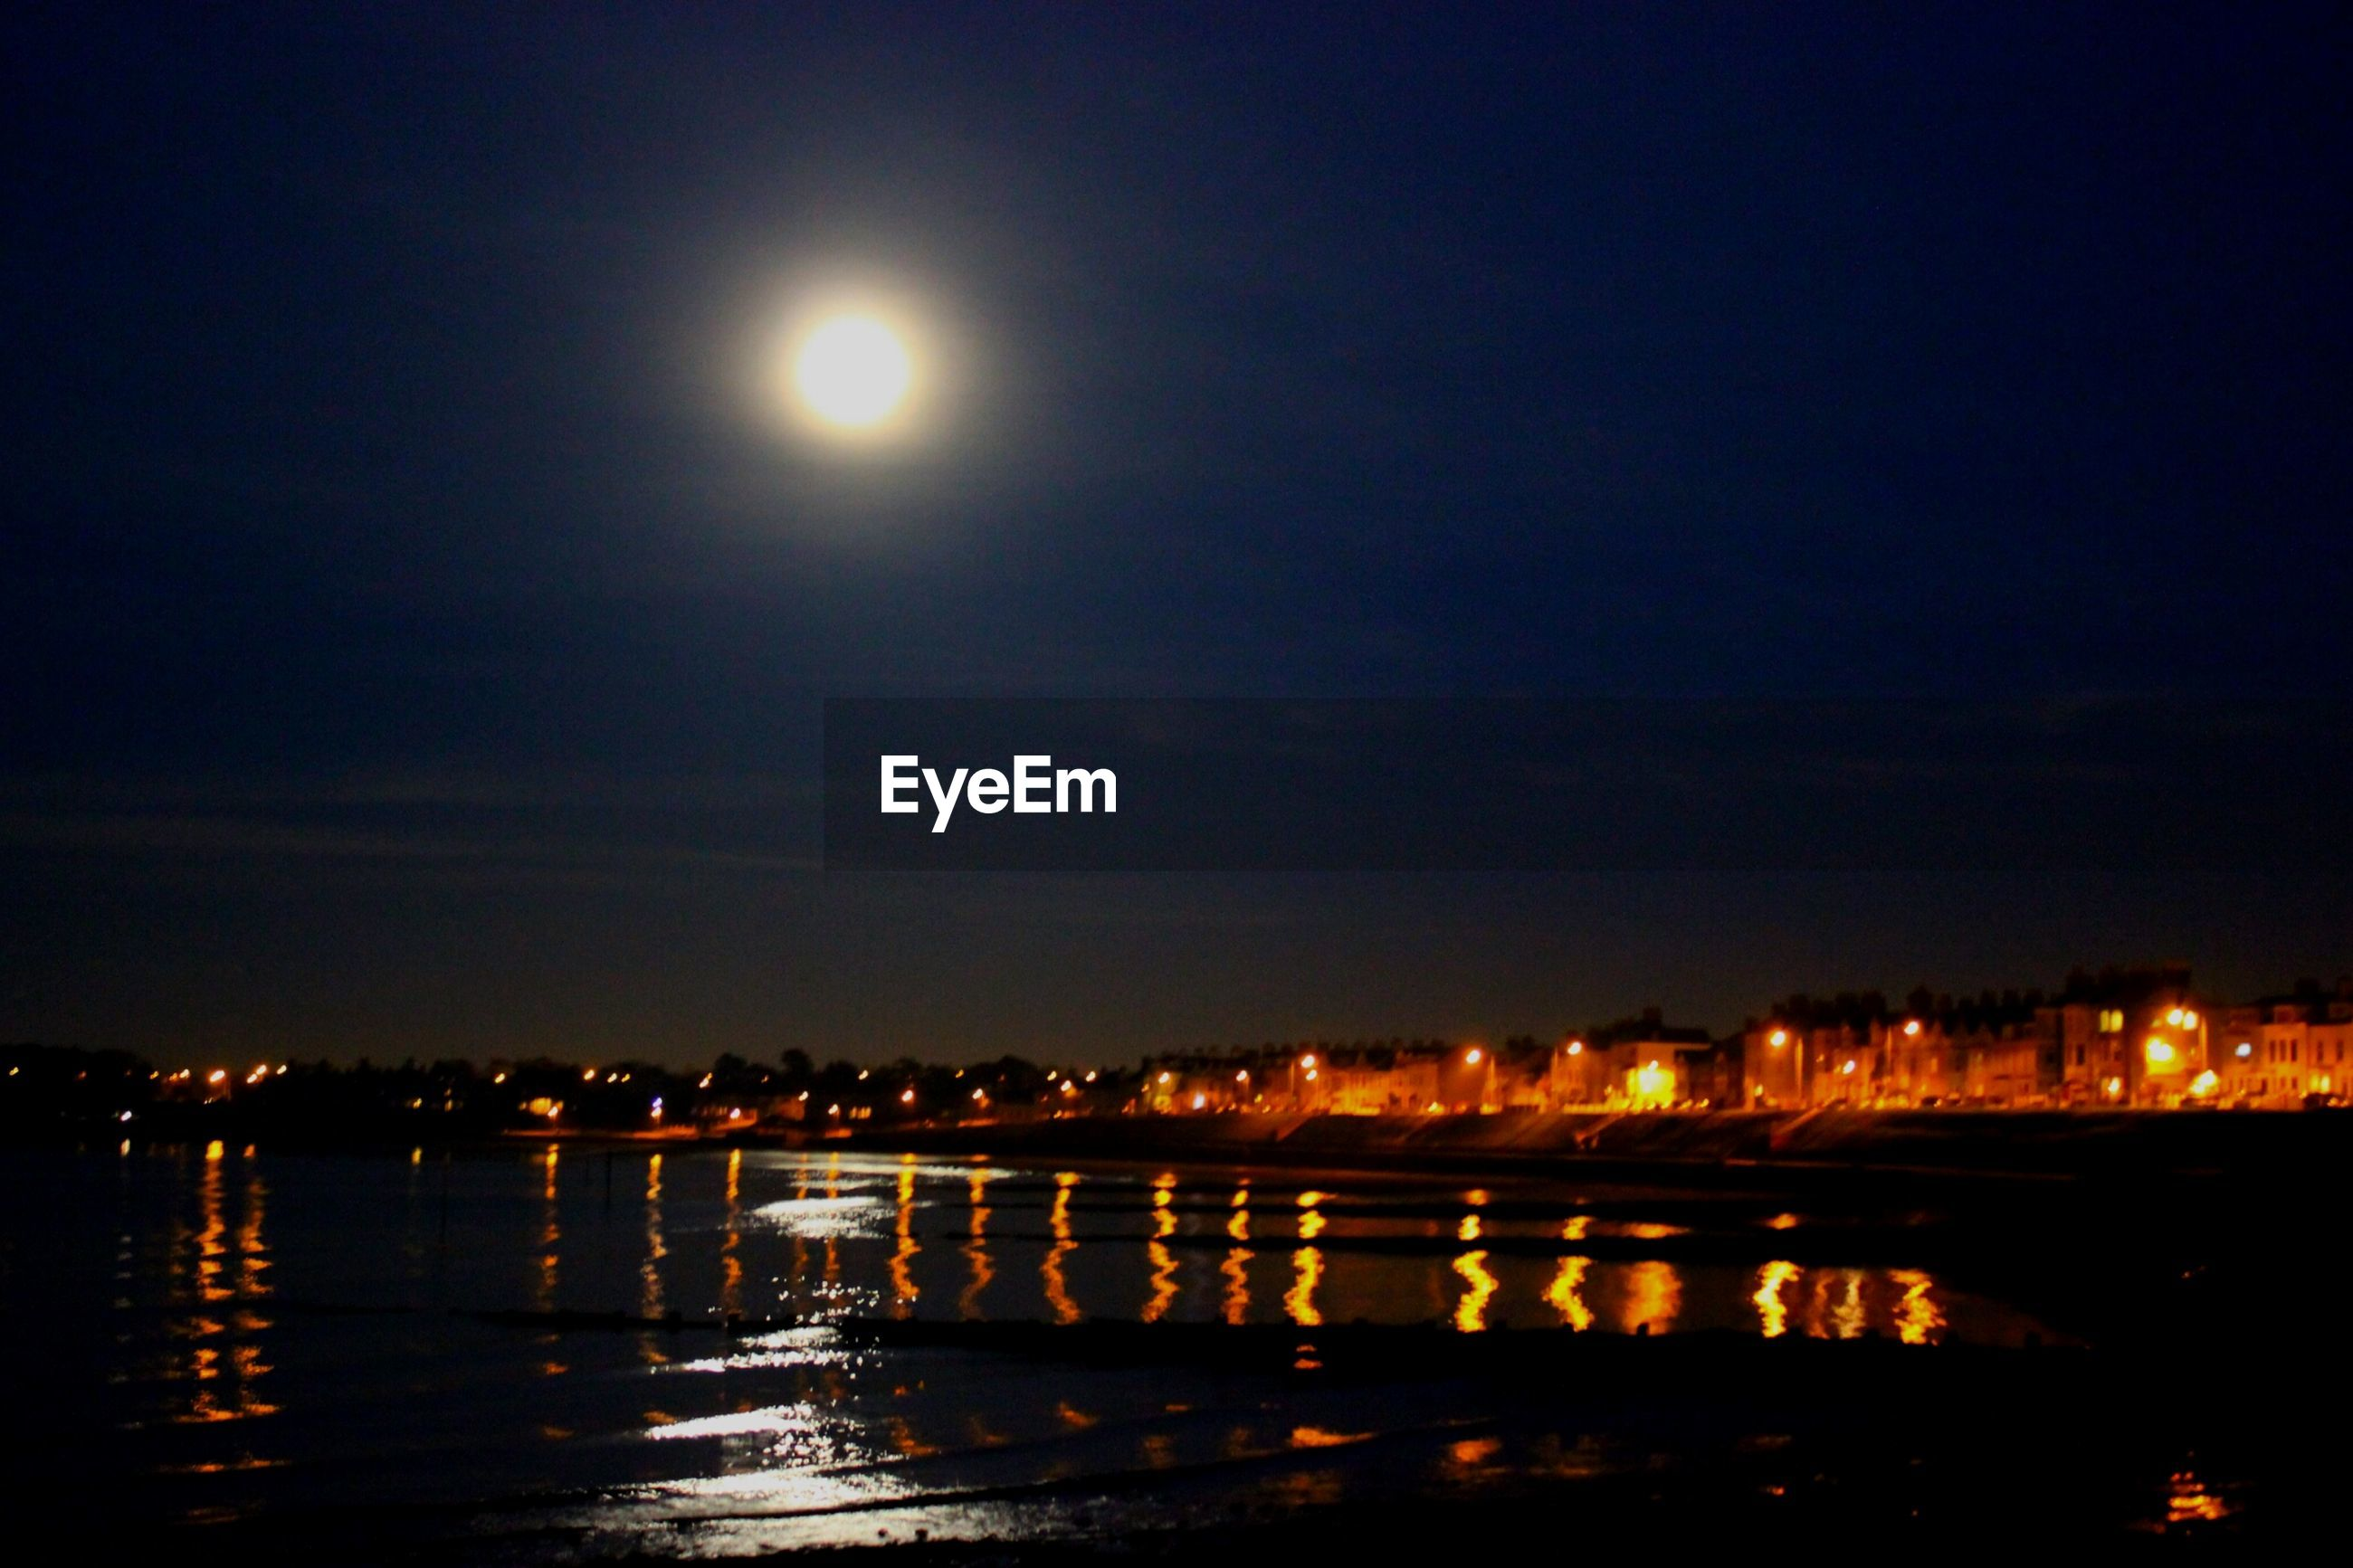 illuminated, night, water, waterfront, reflection, river, architecture, built structure, sky, sea, city, building exterior, connection, bridge - man made structure, moon, street light, lighting equipment, light, dusk, outdoors